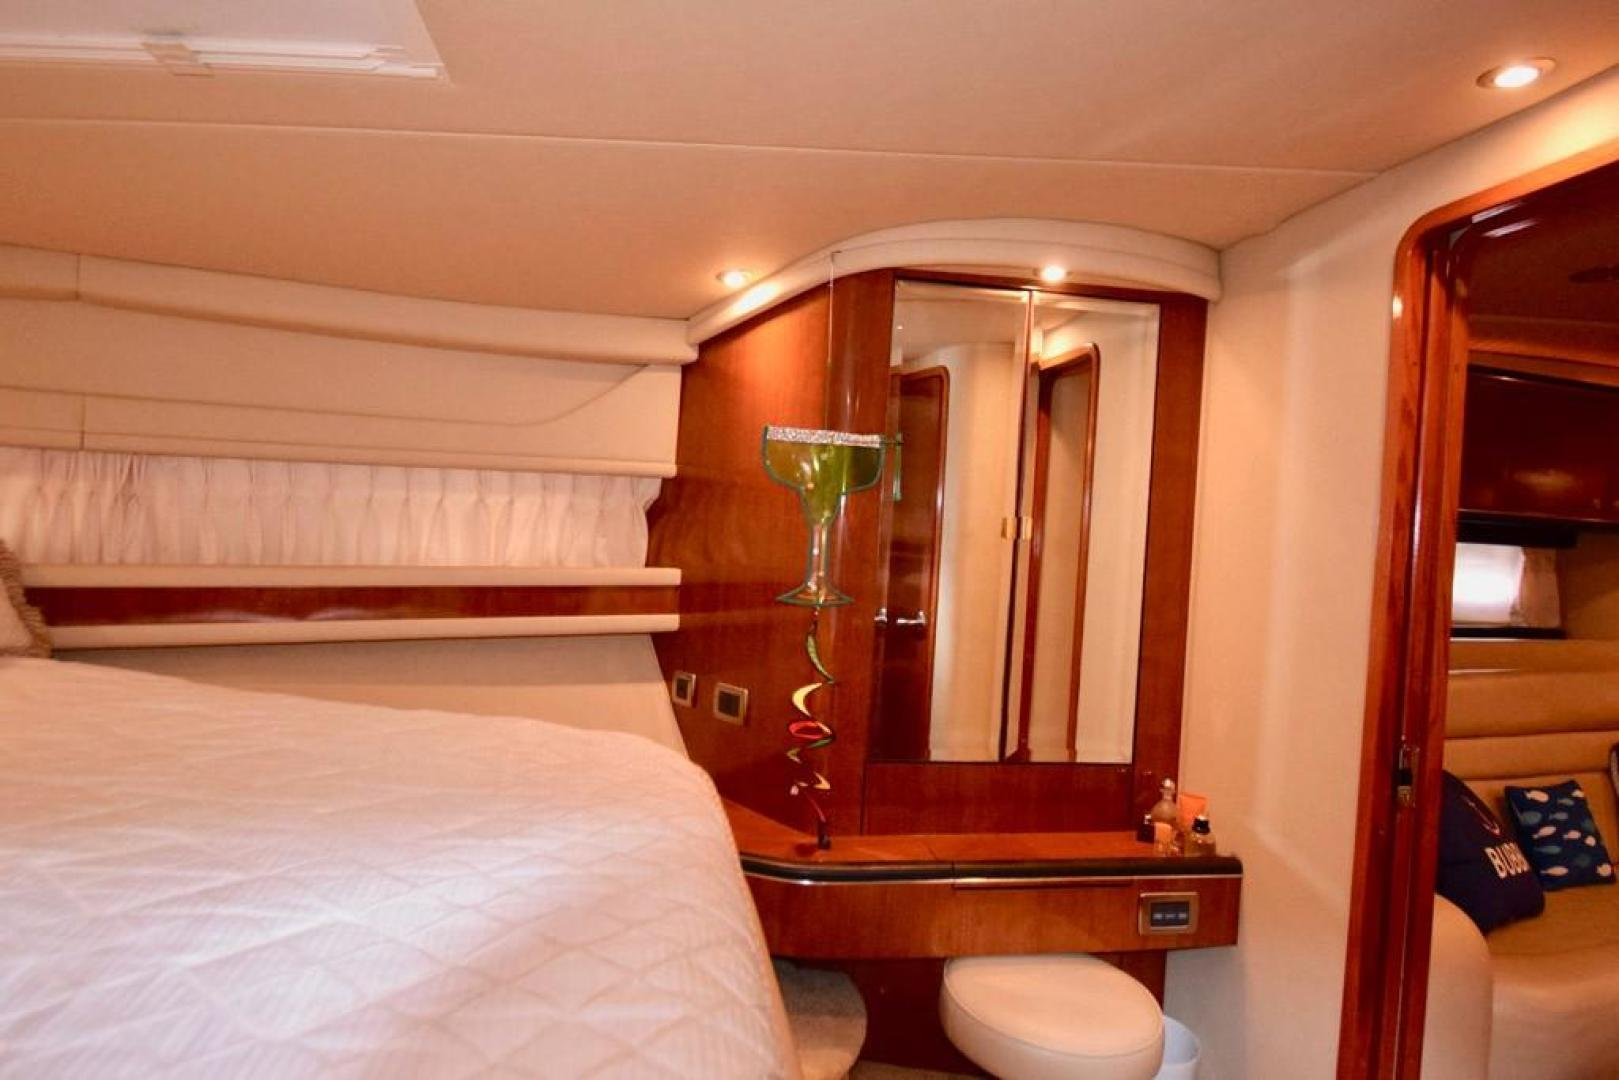 Sea Ray-Sundancer 2004-Bubba The Final Version? Dania Beach-Florida-United States-Main Stateroom from Port to Starboard-368977 | Thumbnail